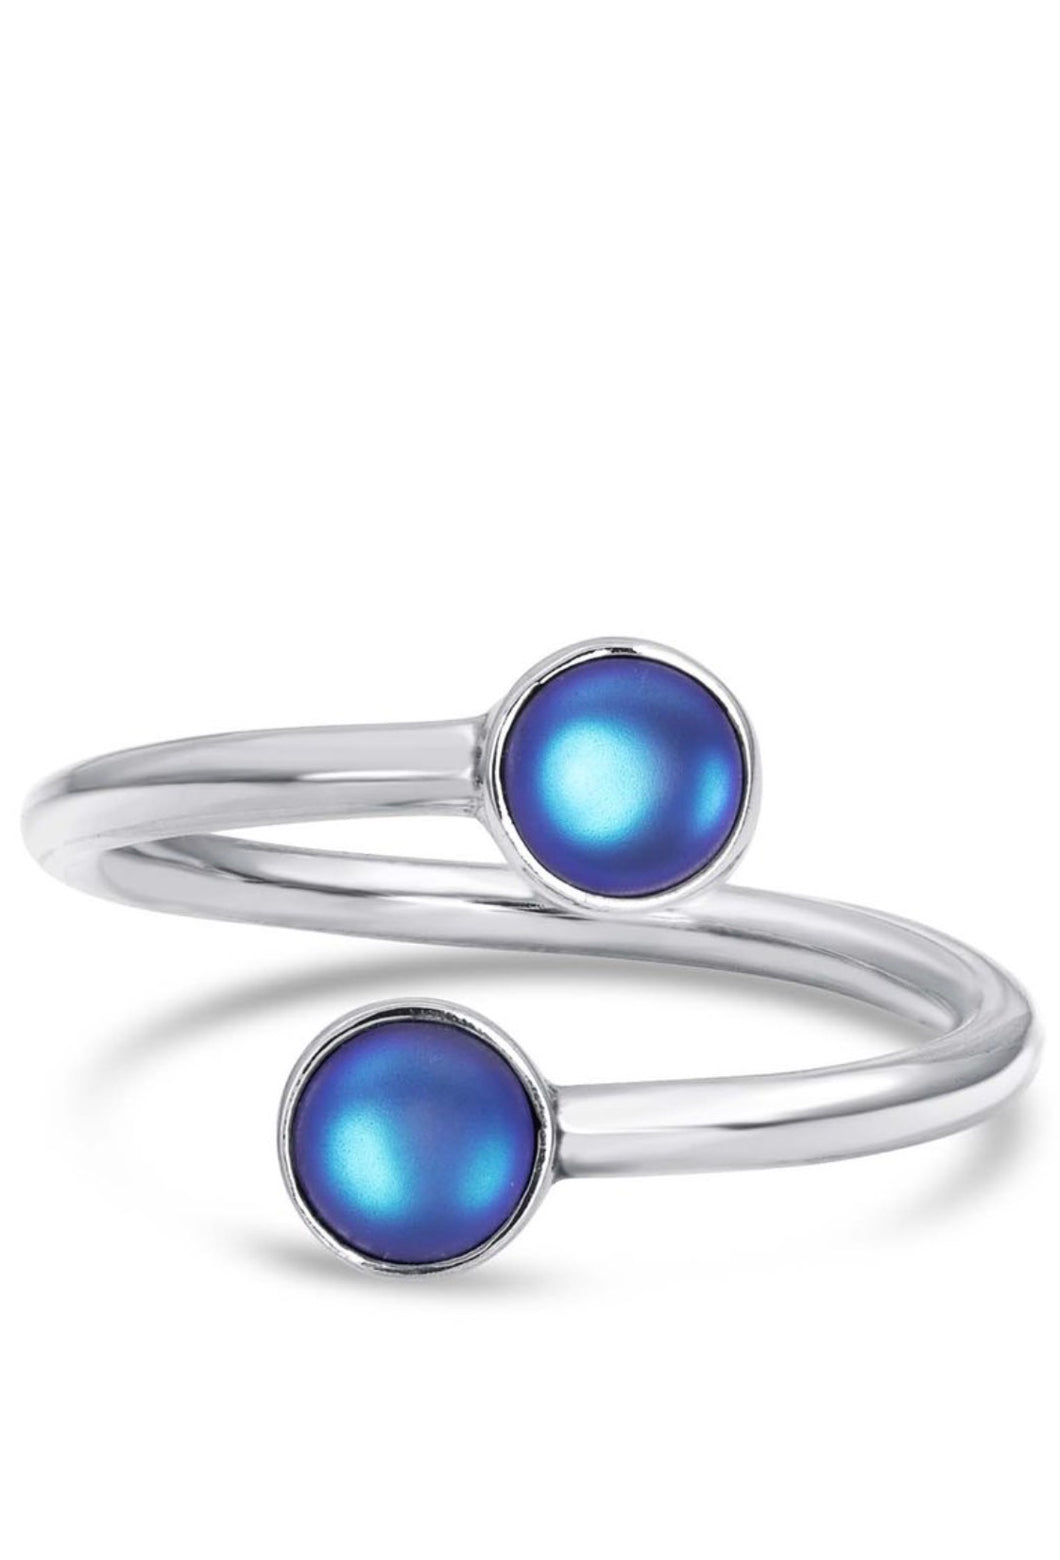 Hand-crafted Sterling Silver Double Ring - Blue